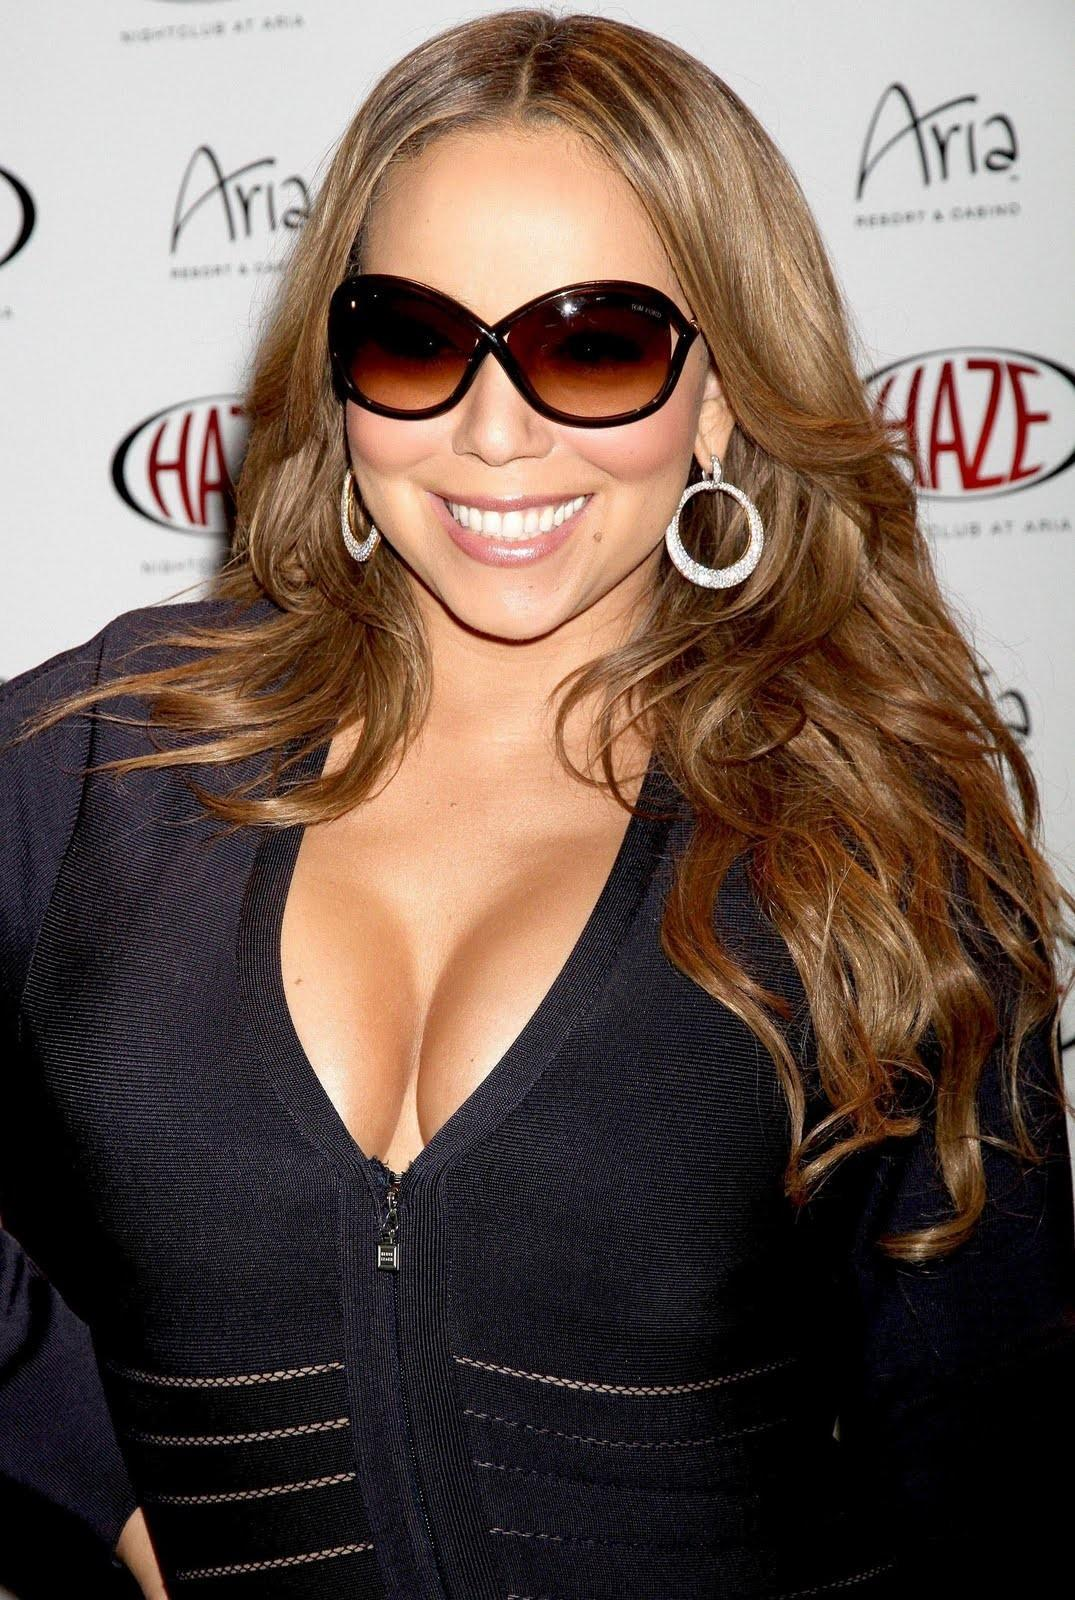 Mariah Carey: Mariah Carey Body Pics